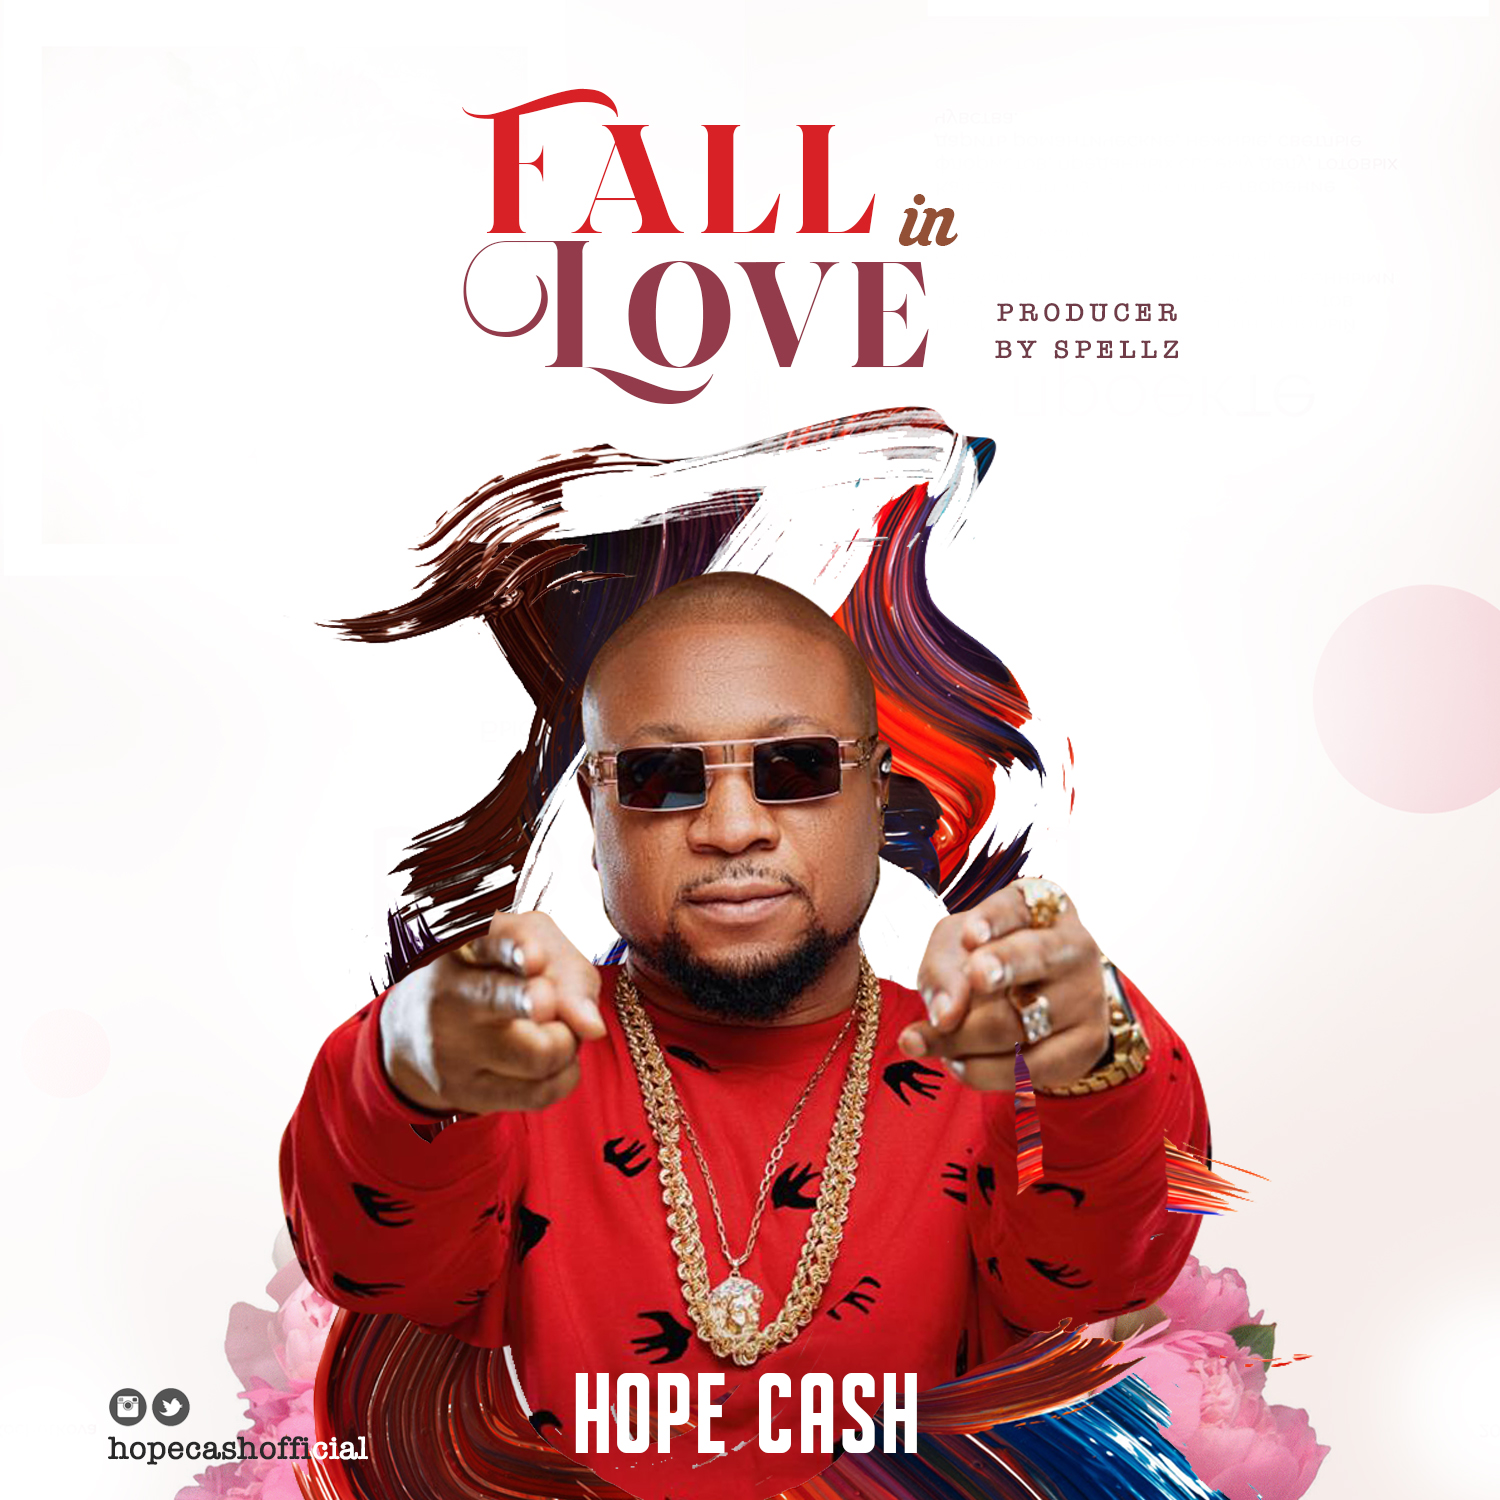 VIDEO: Hope Cash – Fall in Love